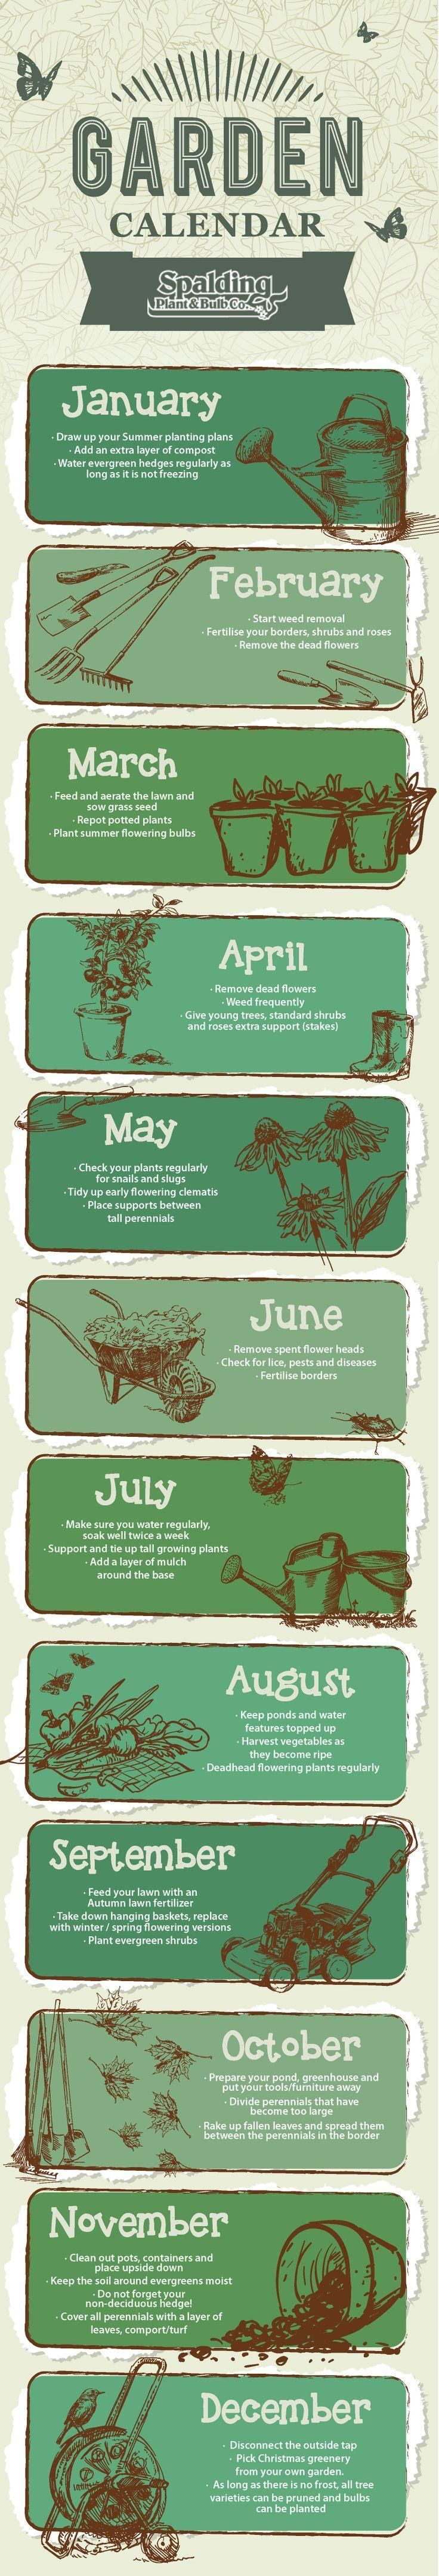 Gardening Calendar - Month by Month